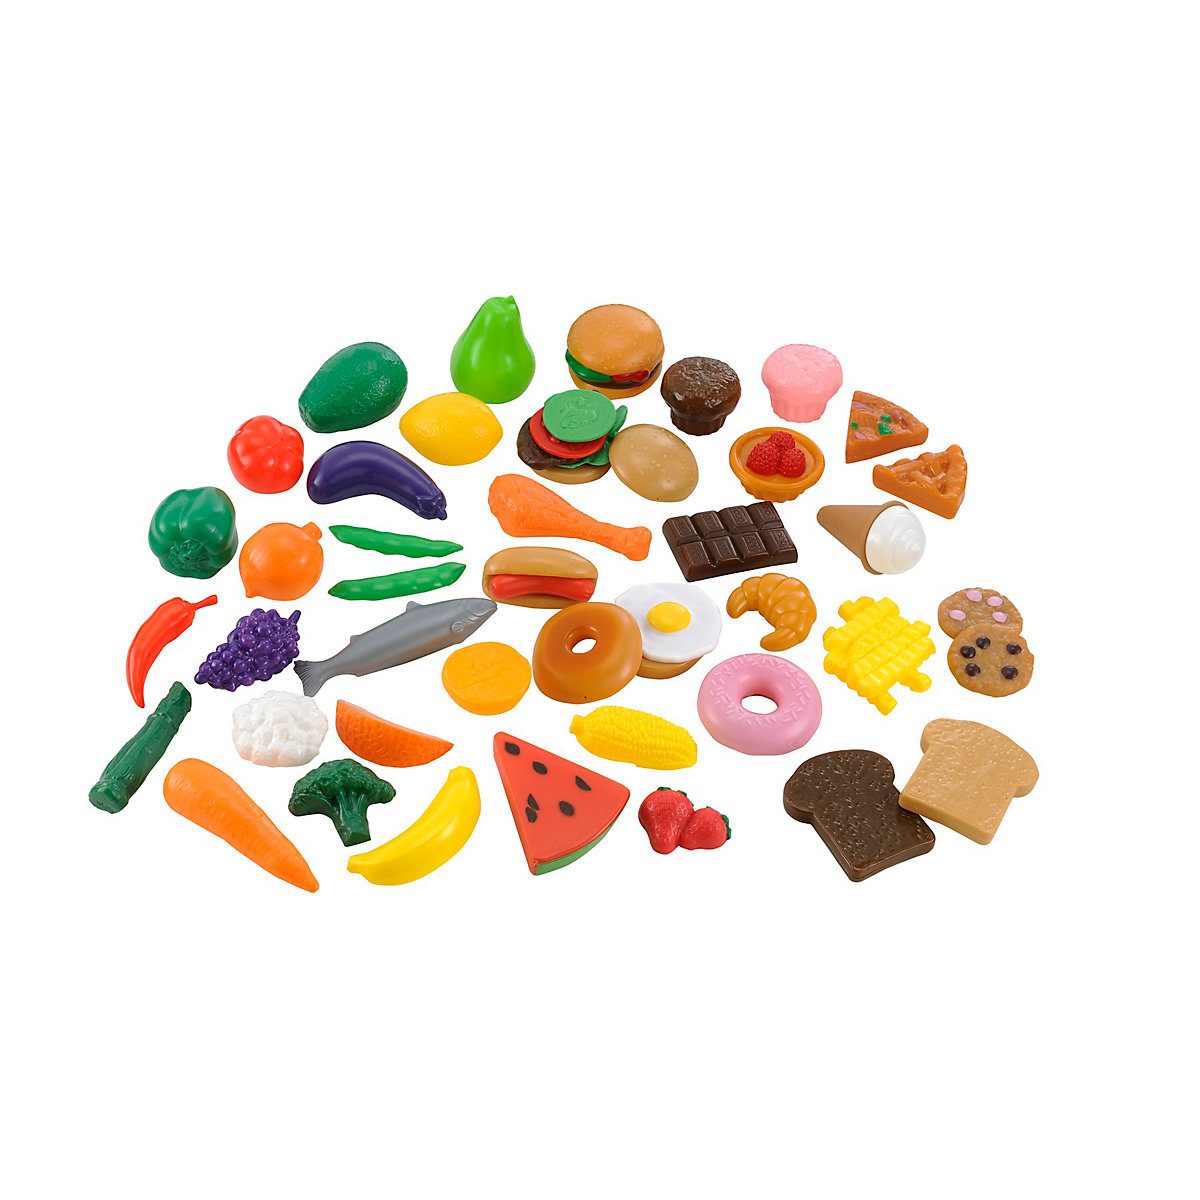 Bumper Play Food Set Toy From 3 years